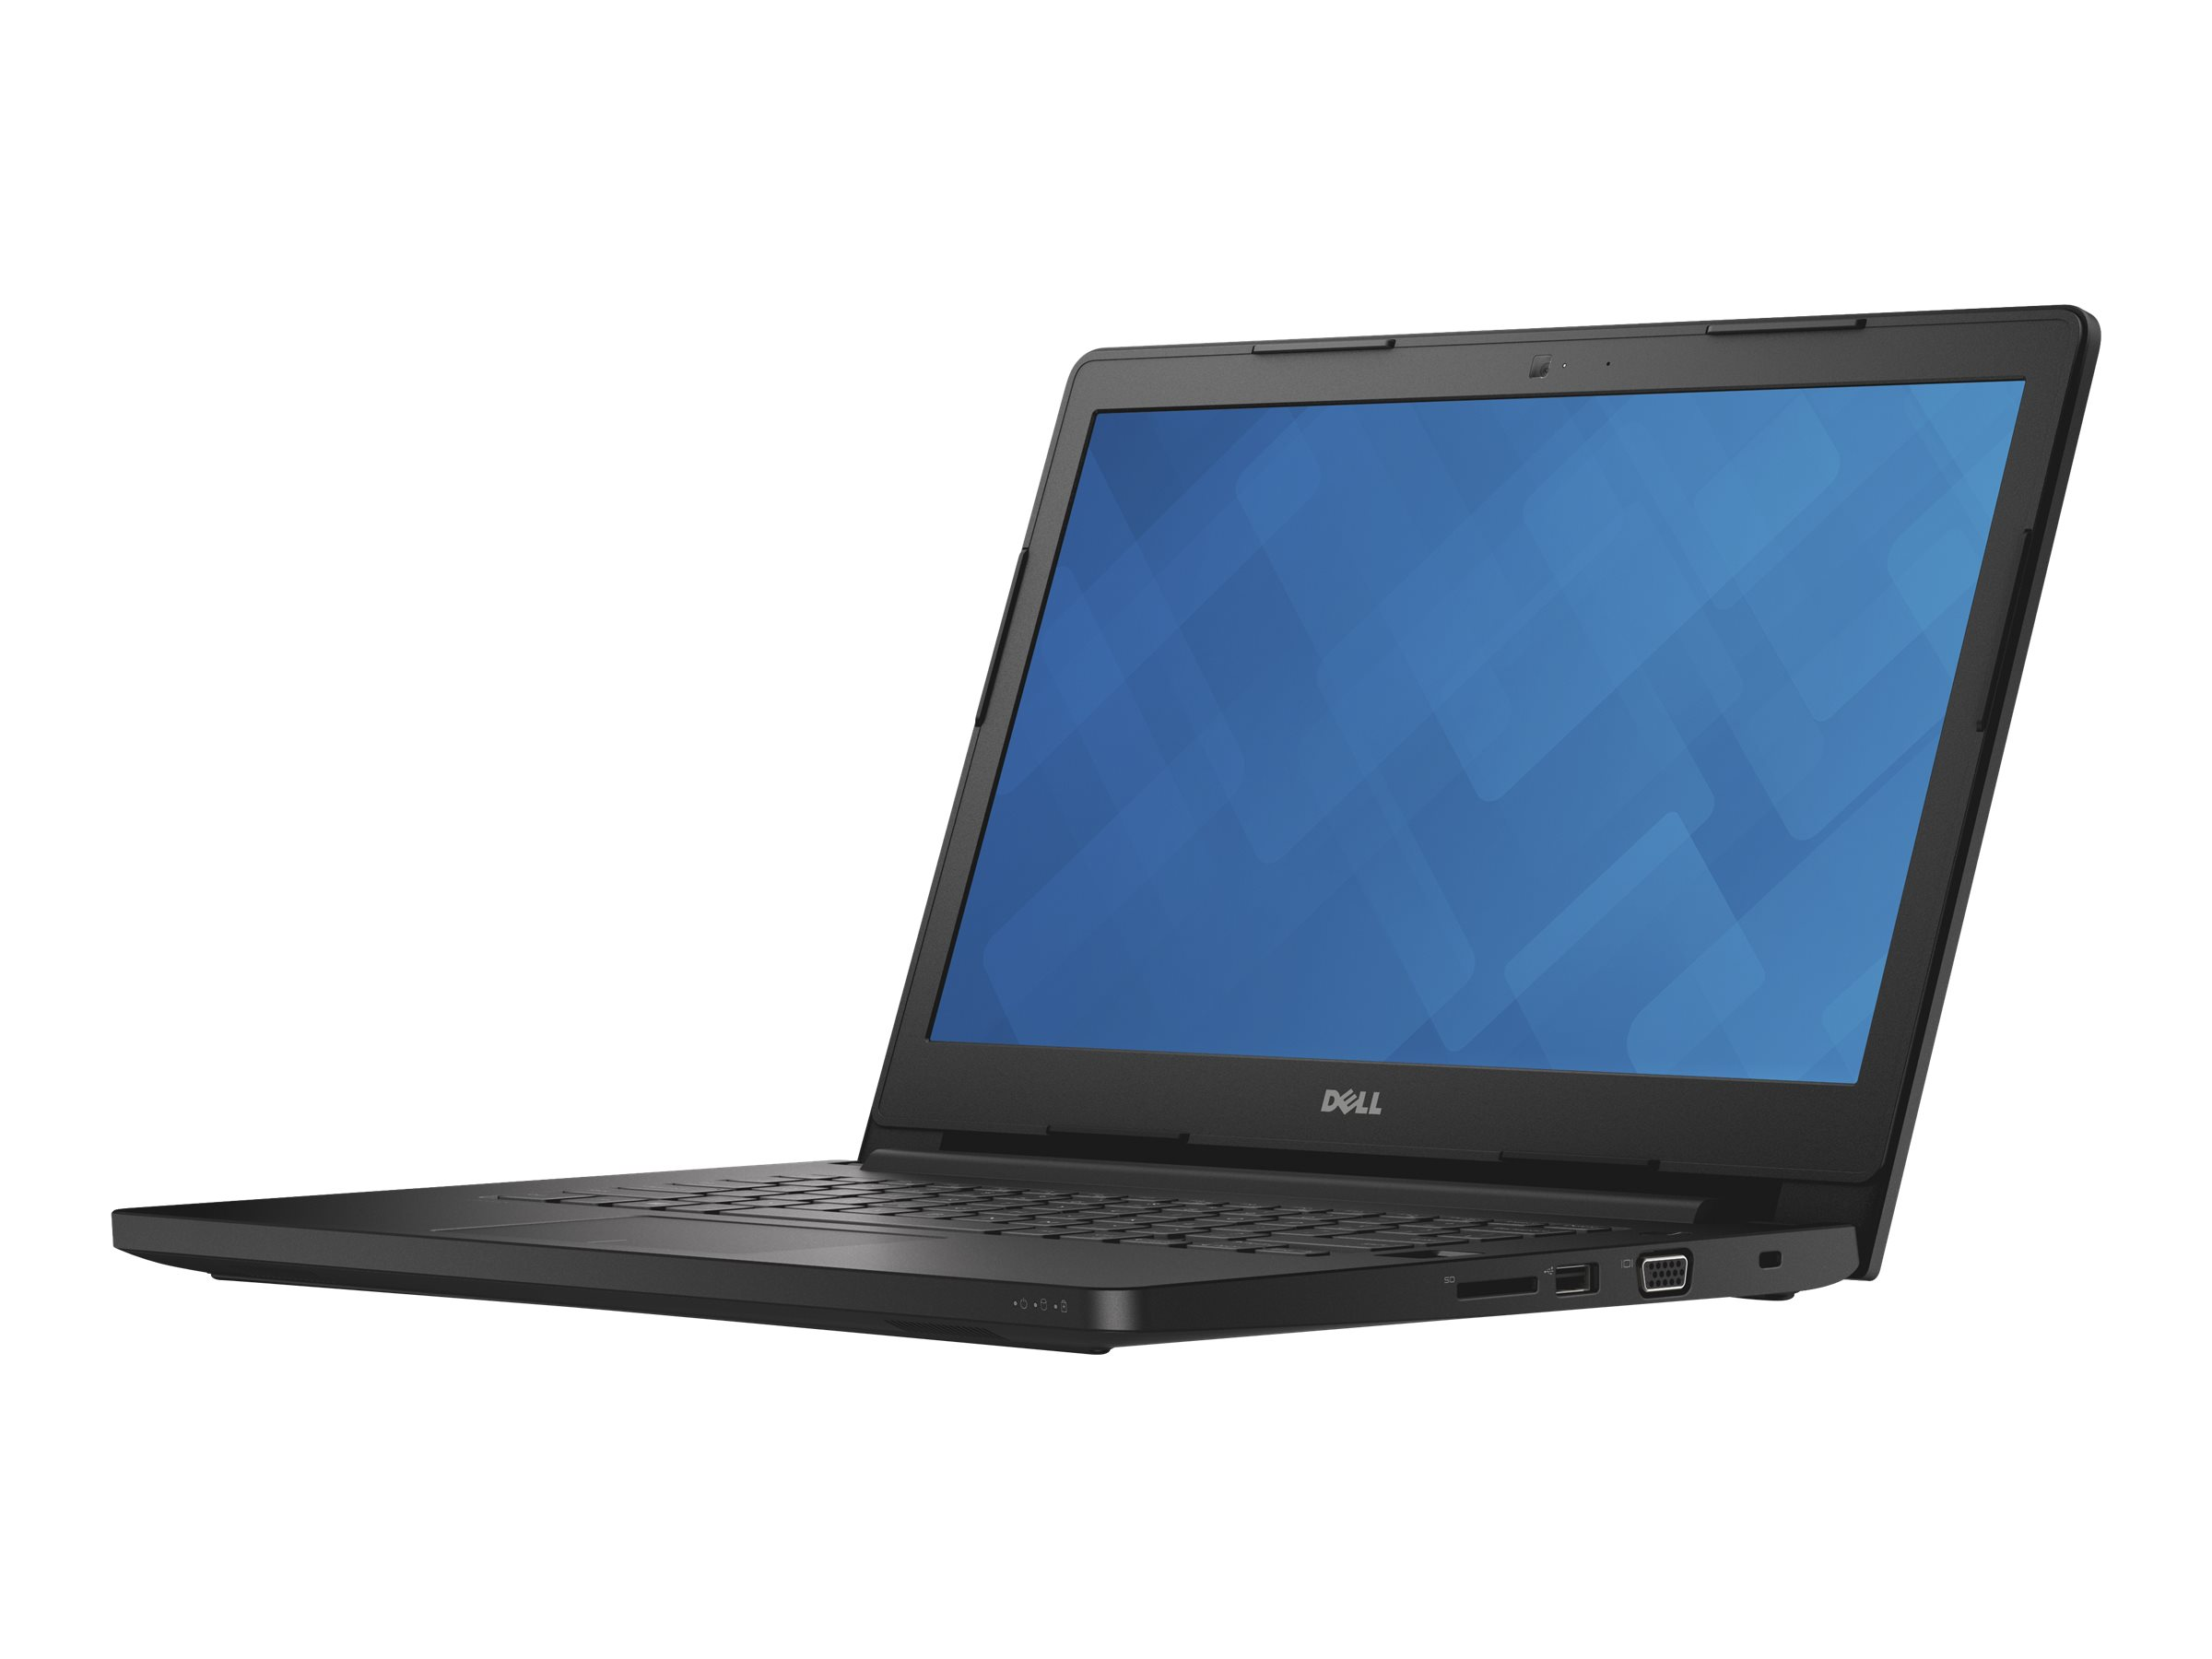 "Dell Latitude 3470 - 14"" - Core i3 6100U - 4 GB RAM - 500 GB HDD - English"